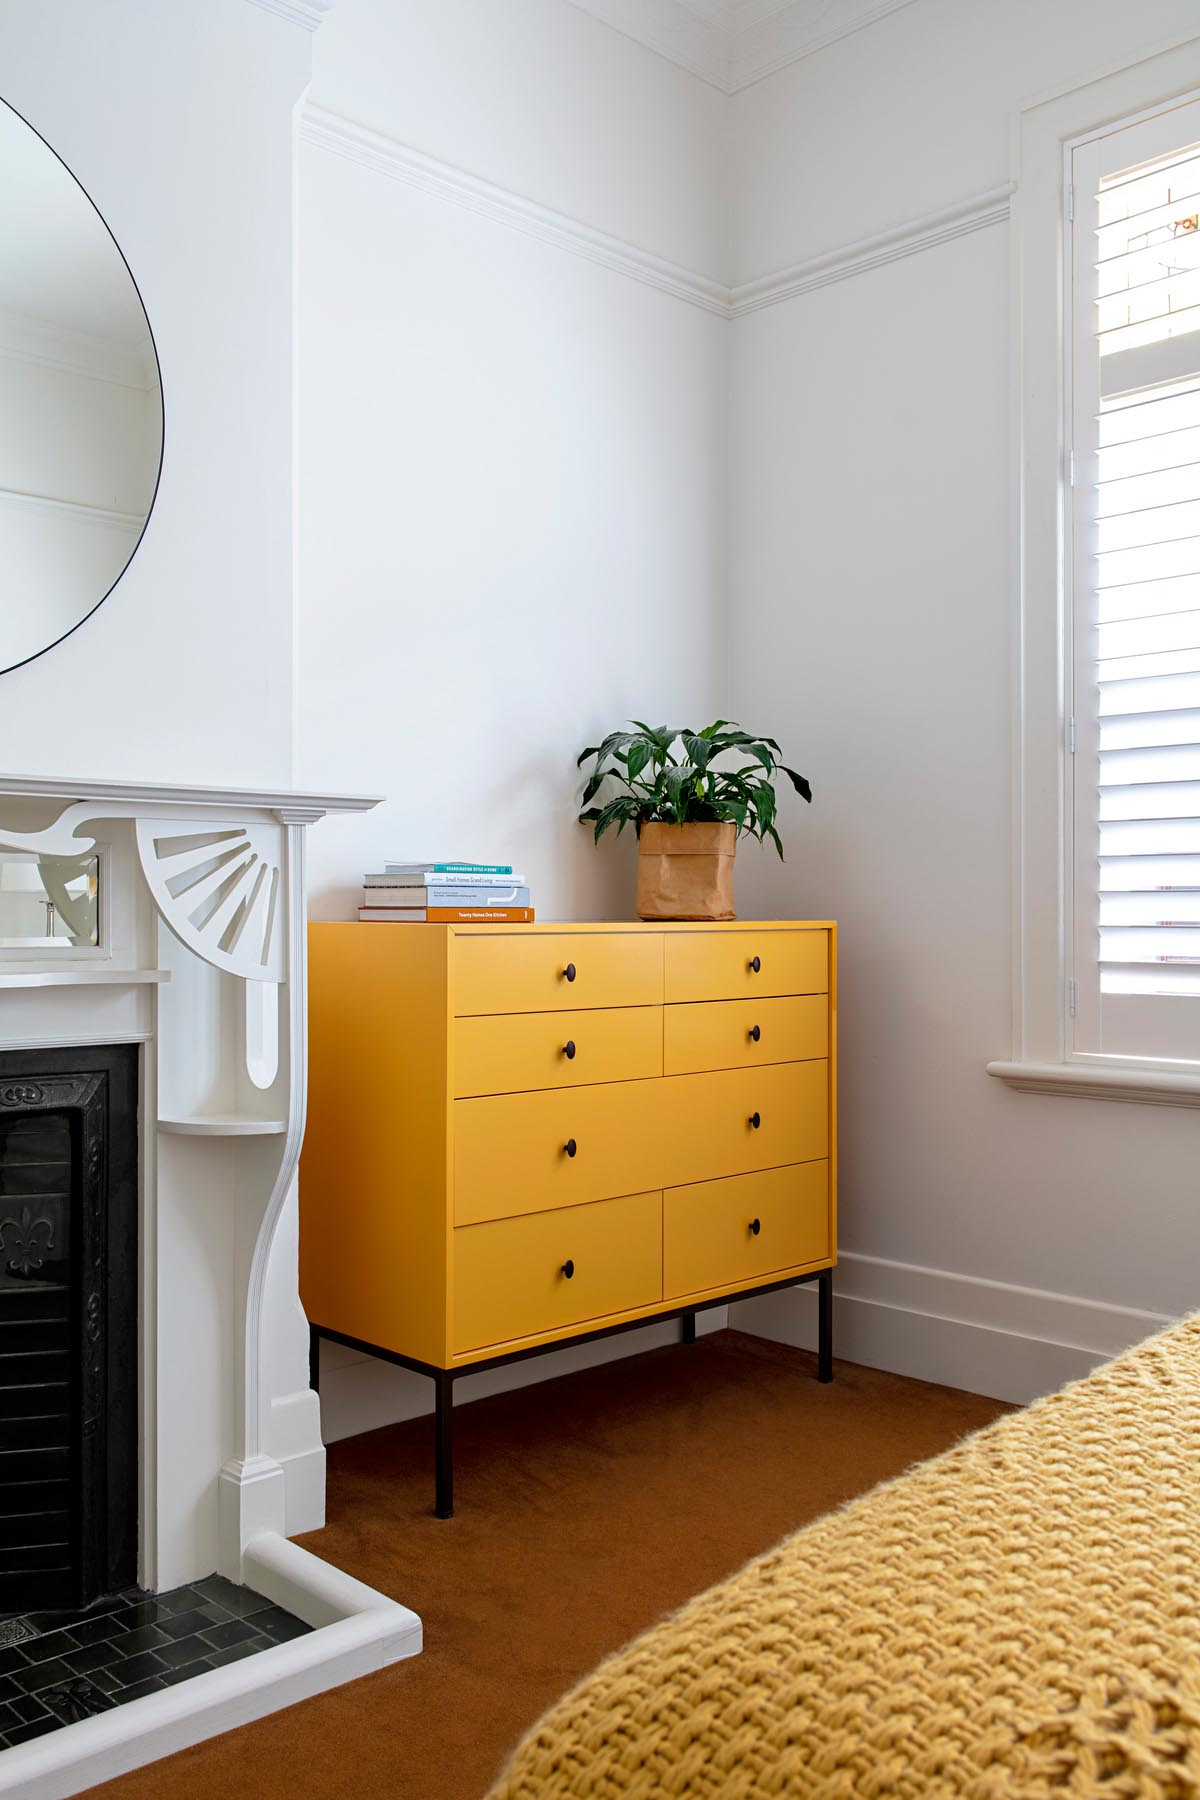 In this updated bedroom, a custom furniture piece in mustard yellow adds a colorful accent that complements both the flooring and bedspread.